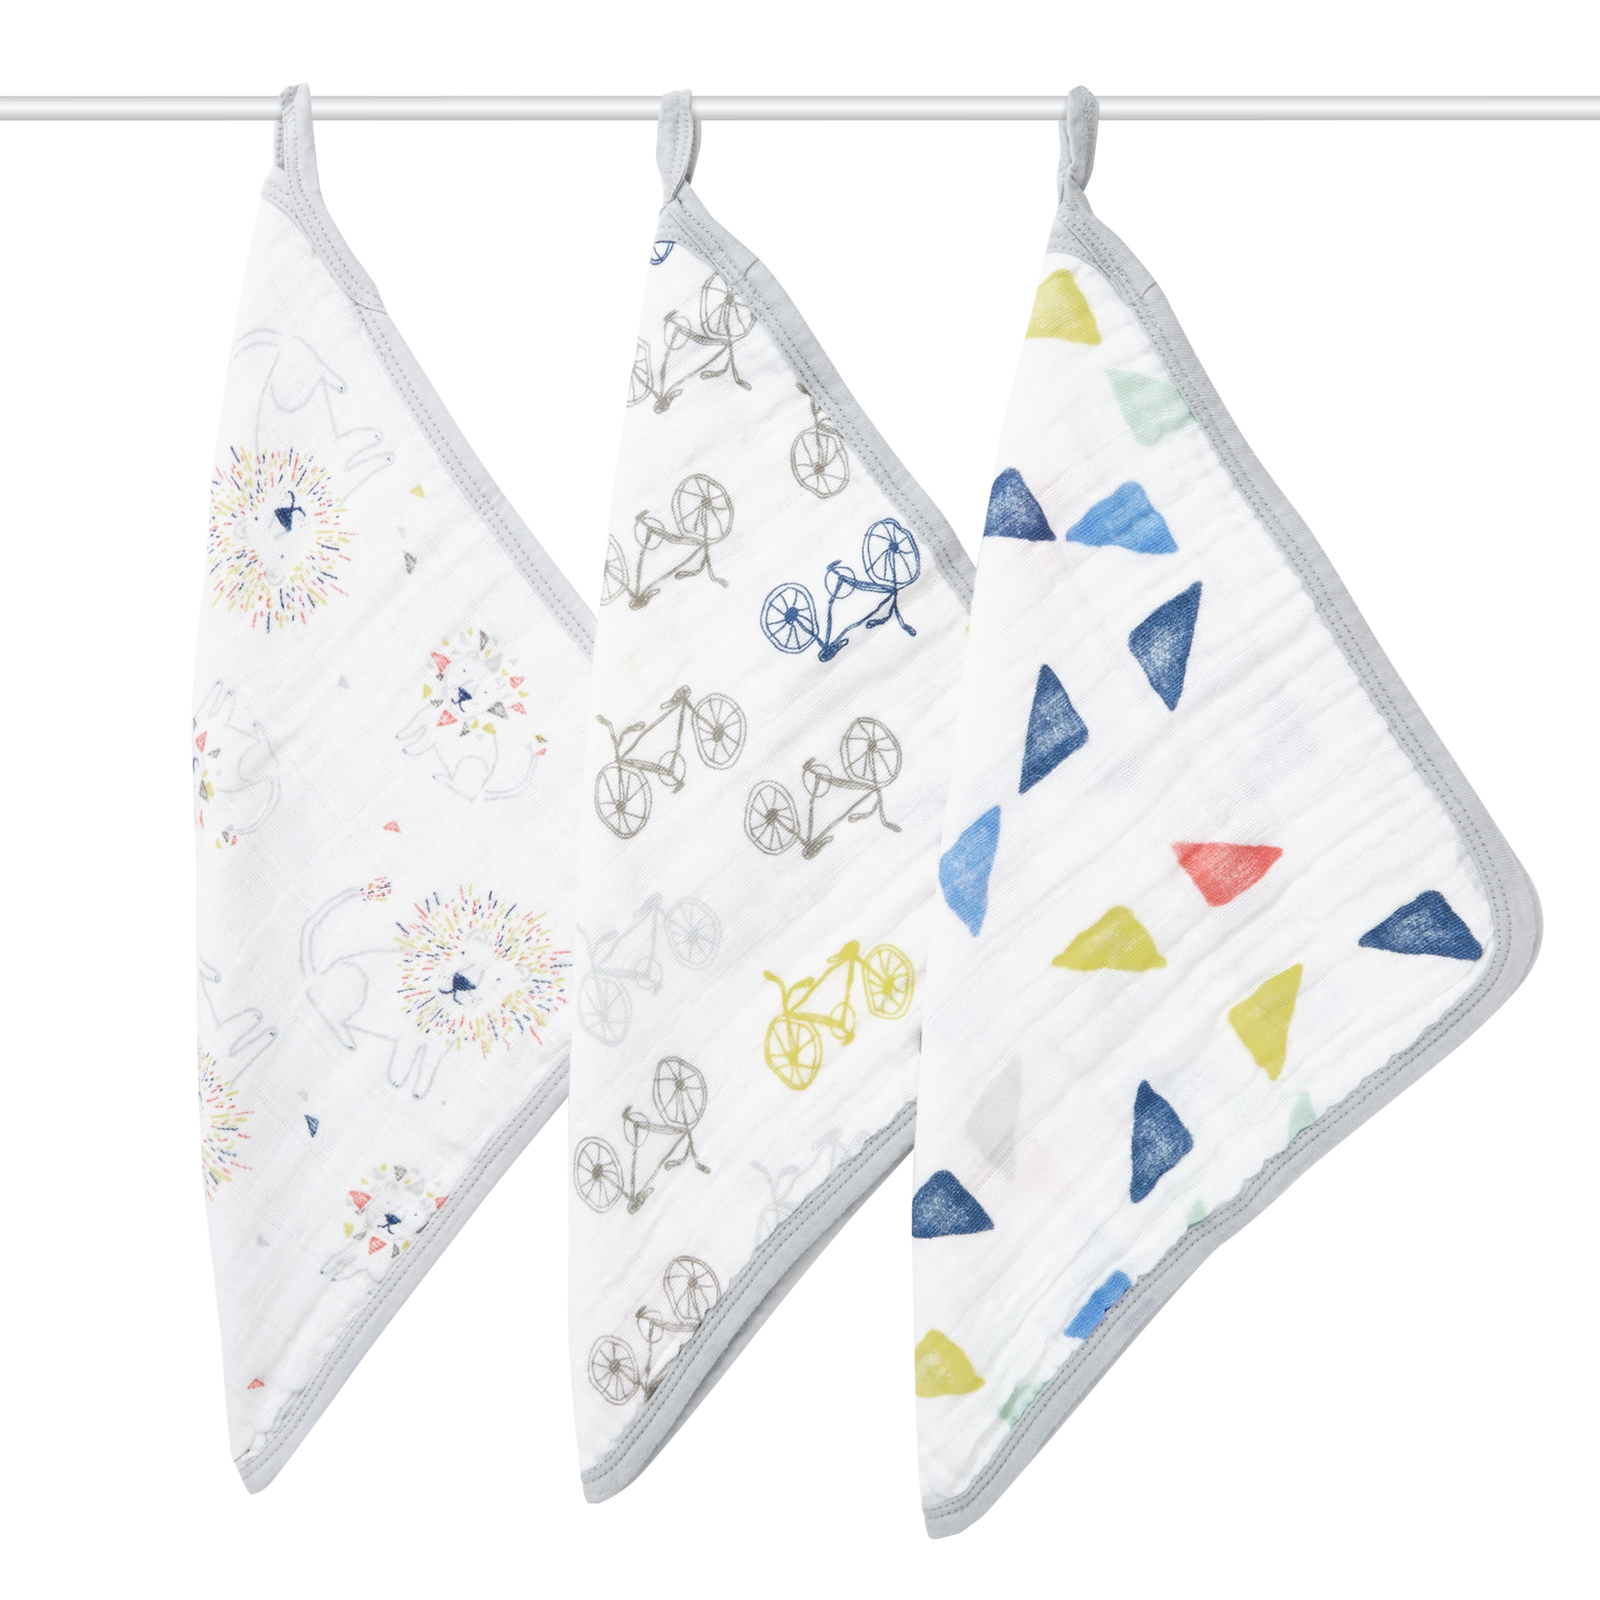 Aden + Anais: Washcloths - Leader of the Pack (3 Pack) image